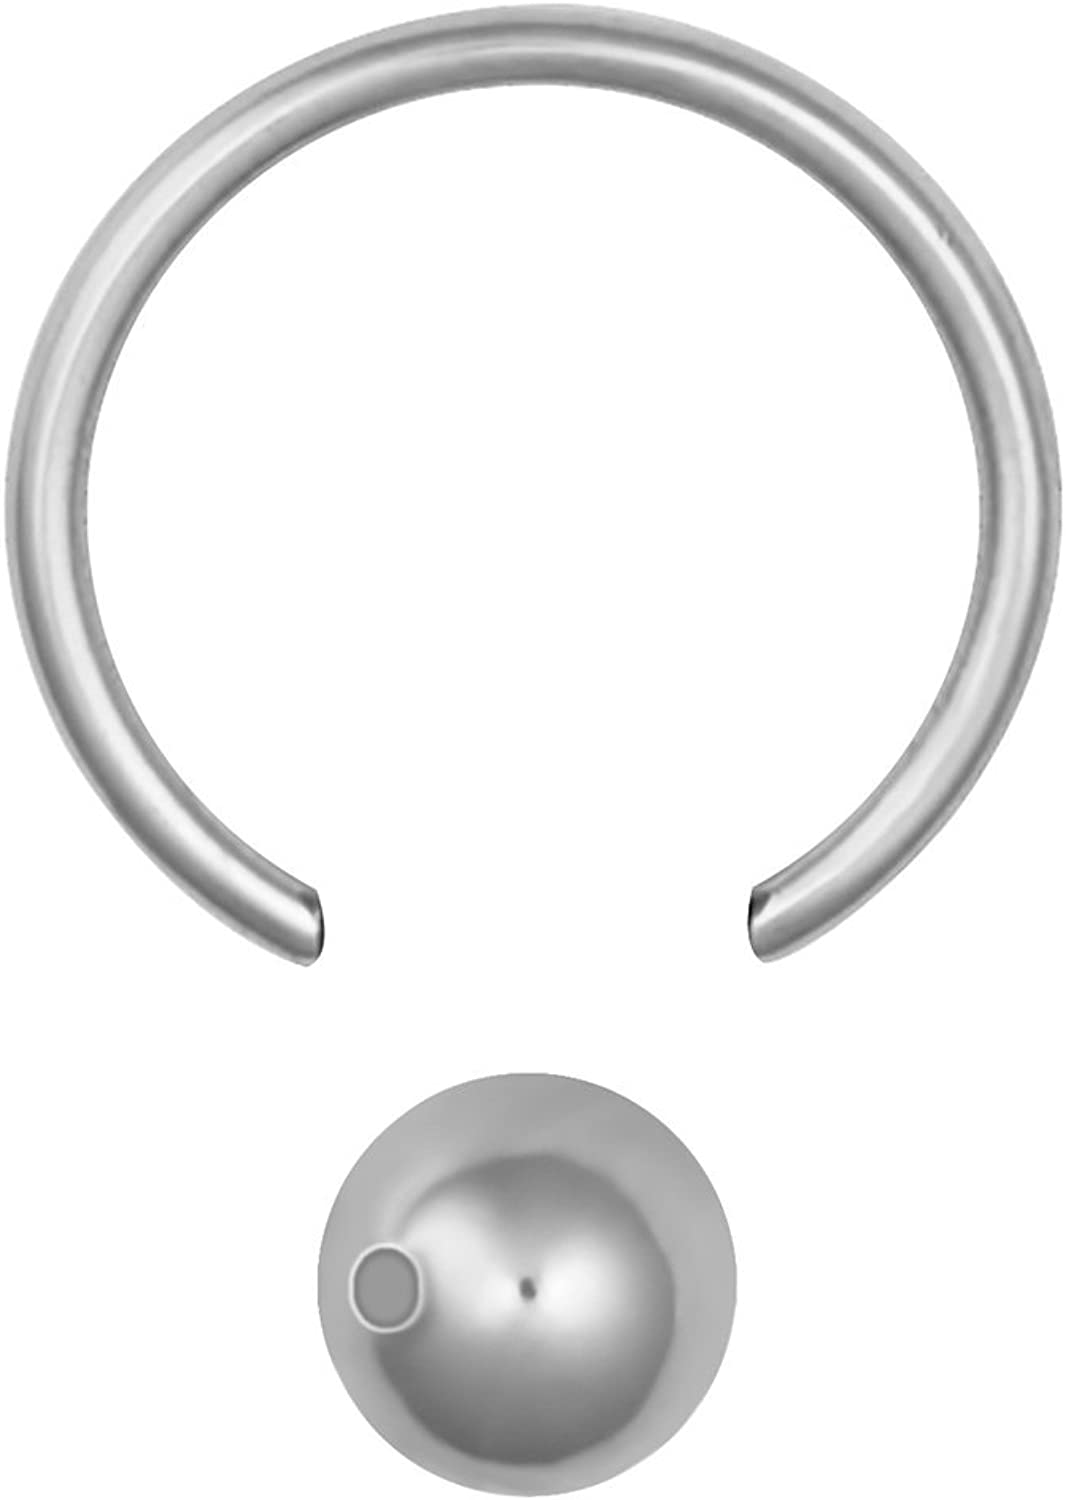 Forbidden Body Jewelry Small Cartilage Hoop Earring: Surgical Steel 5/16 Inch CBR Captive Bead Hoop Ring with 4mm Ball